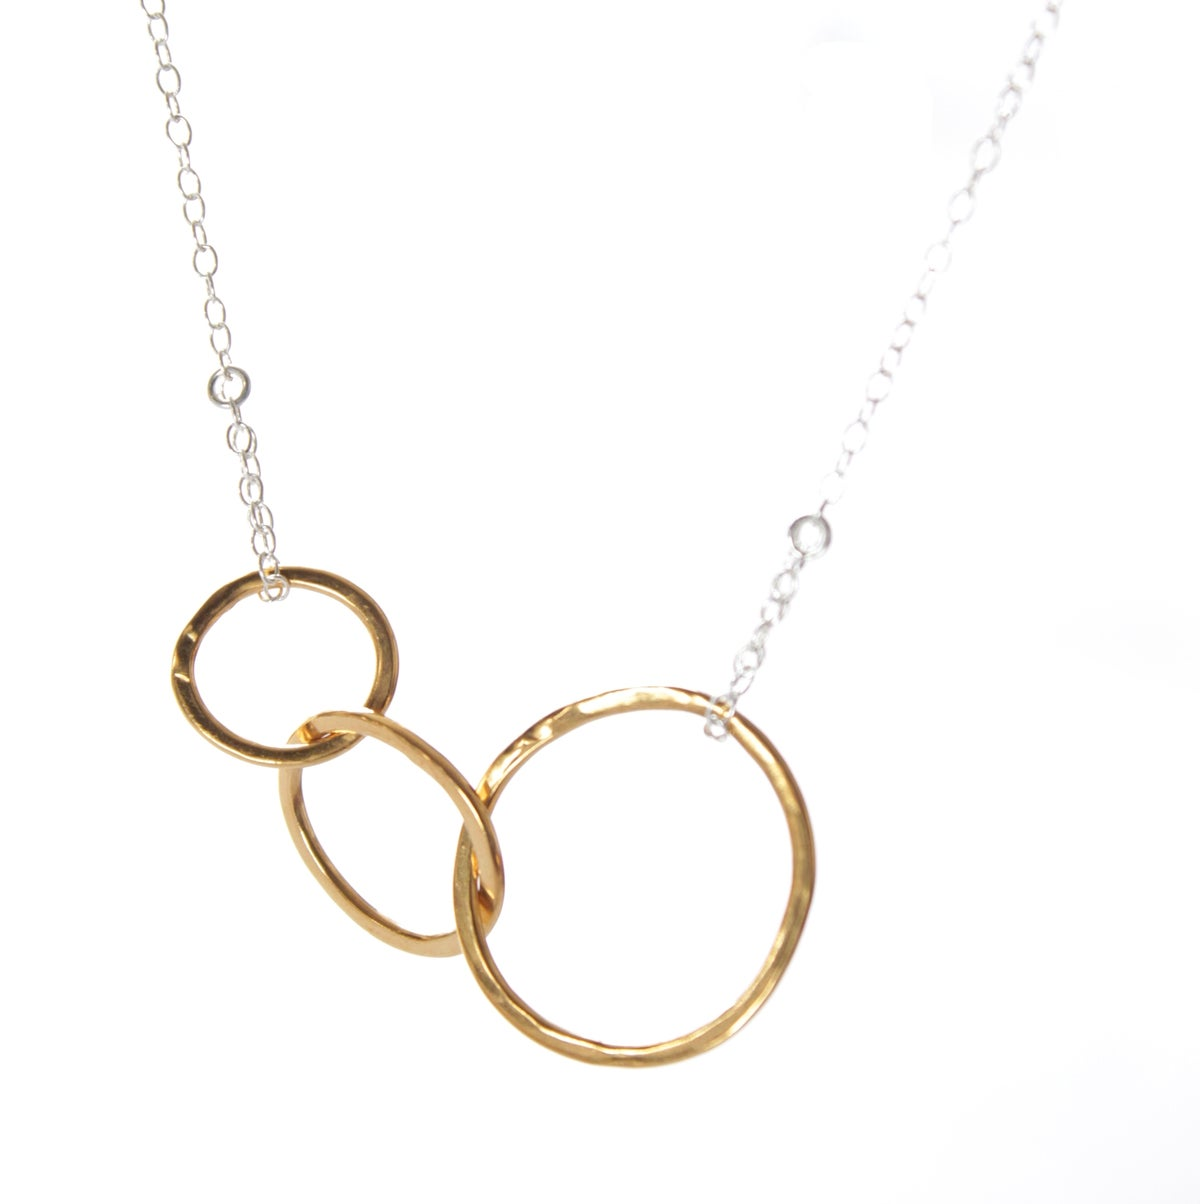 Image of Interlocking loops gold necklace